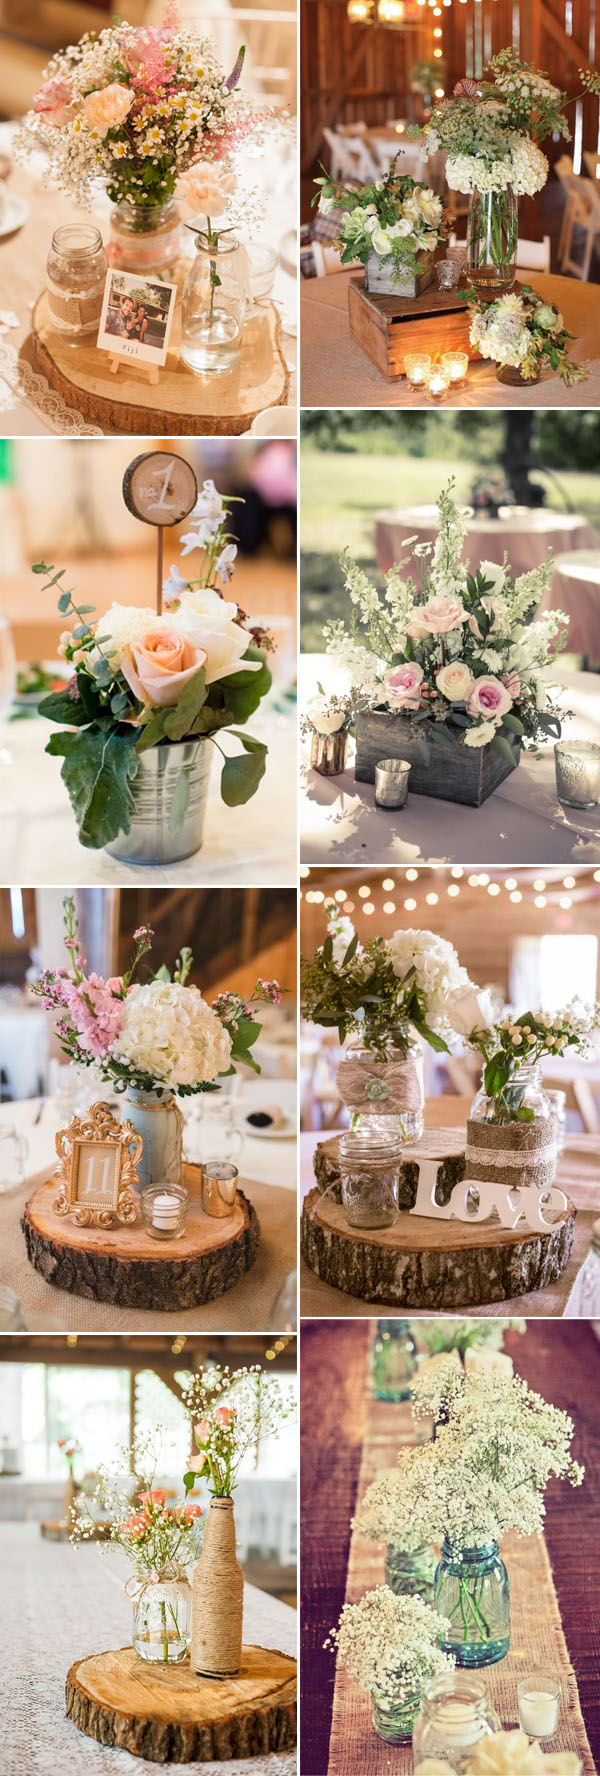 32 Stunning Wedding Centerpieces Ideas – Elegantweddinginvites.com Blog